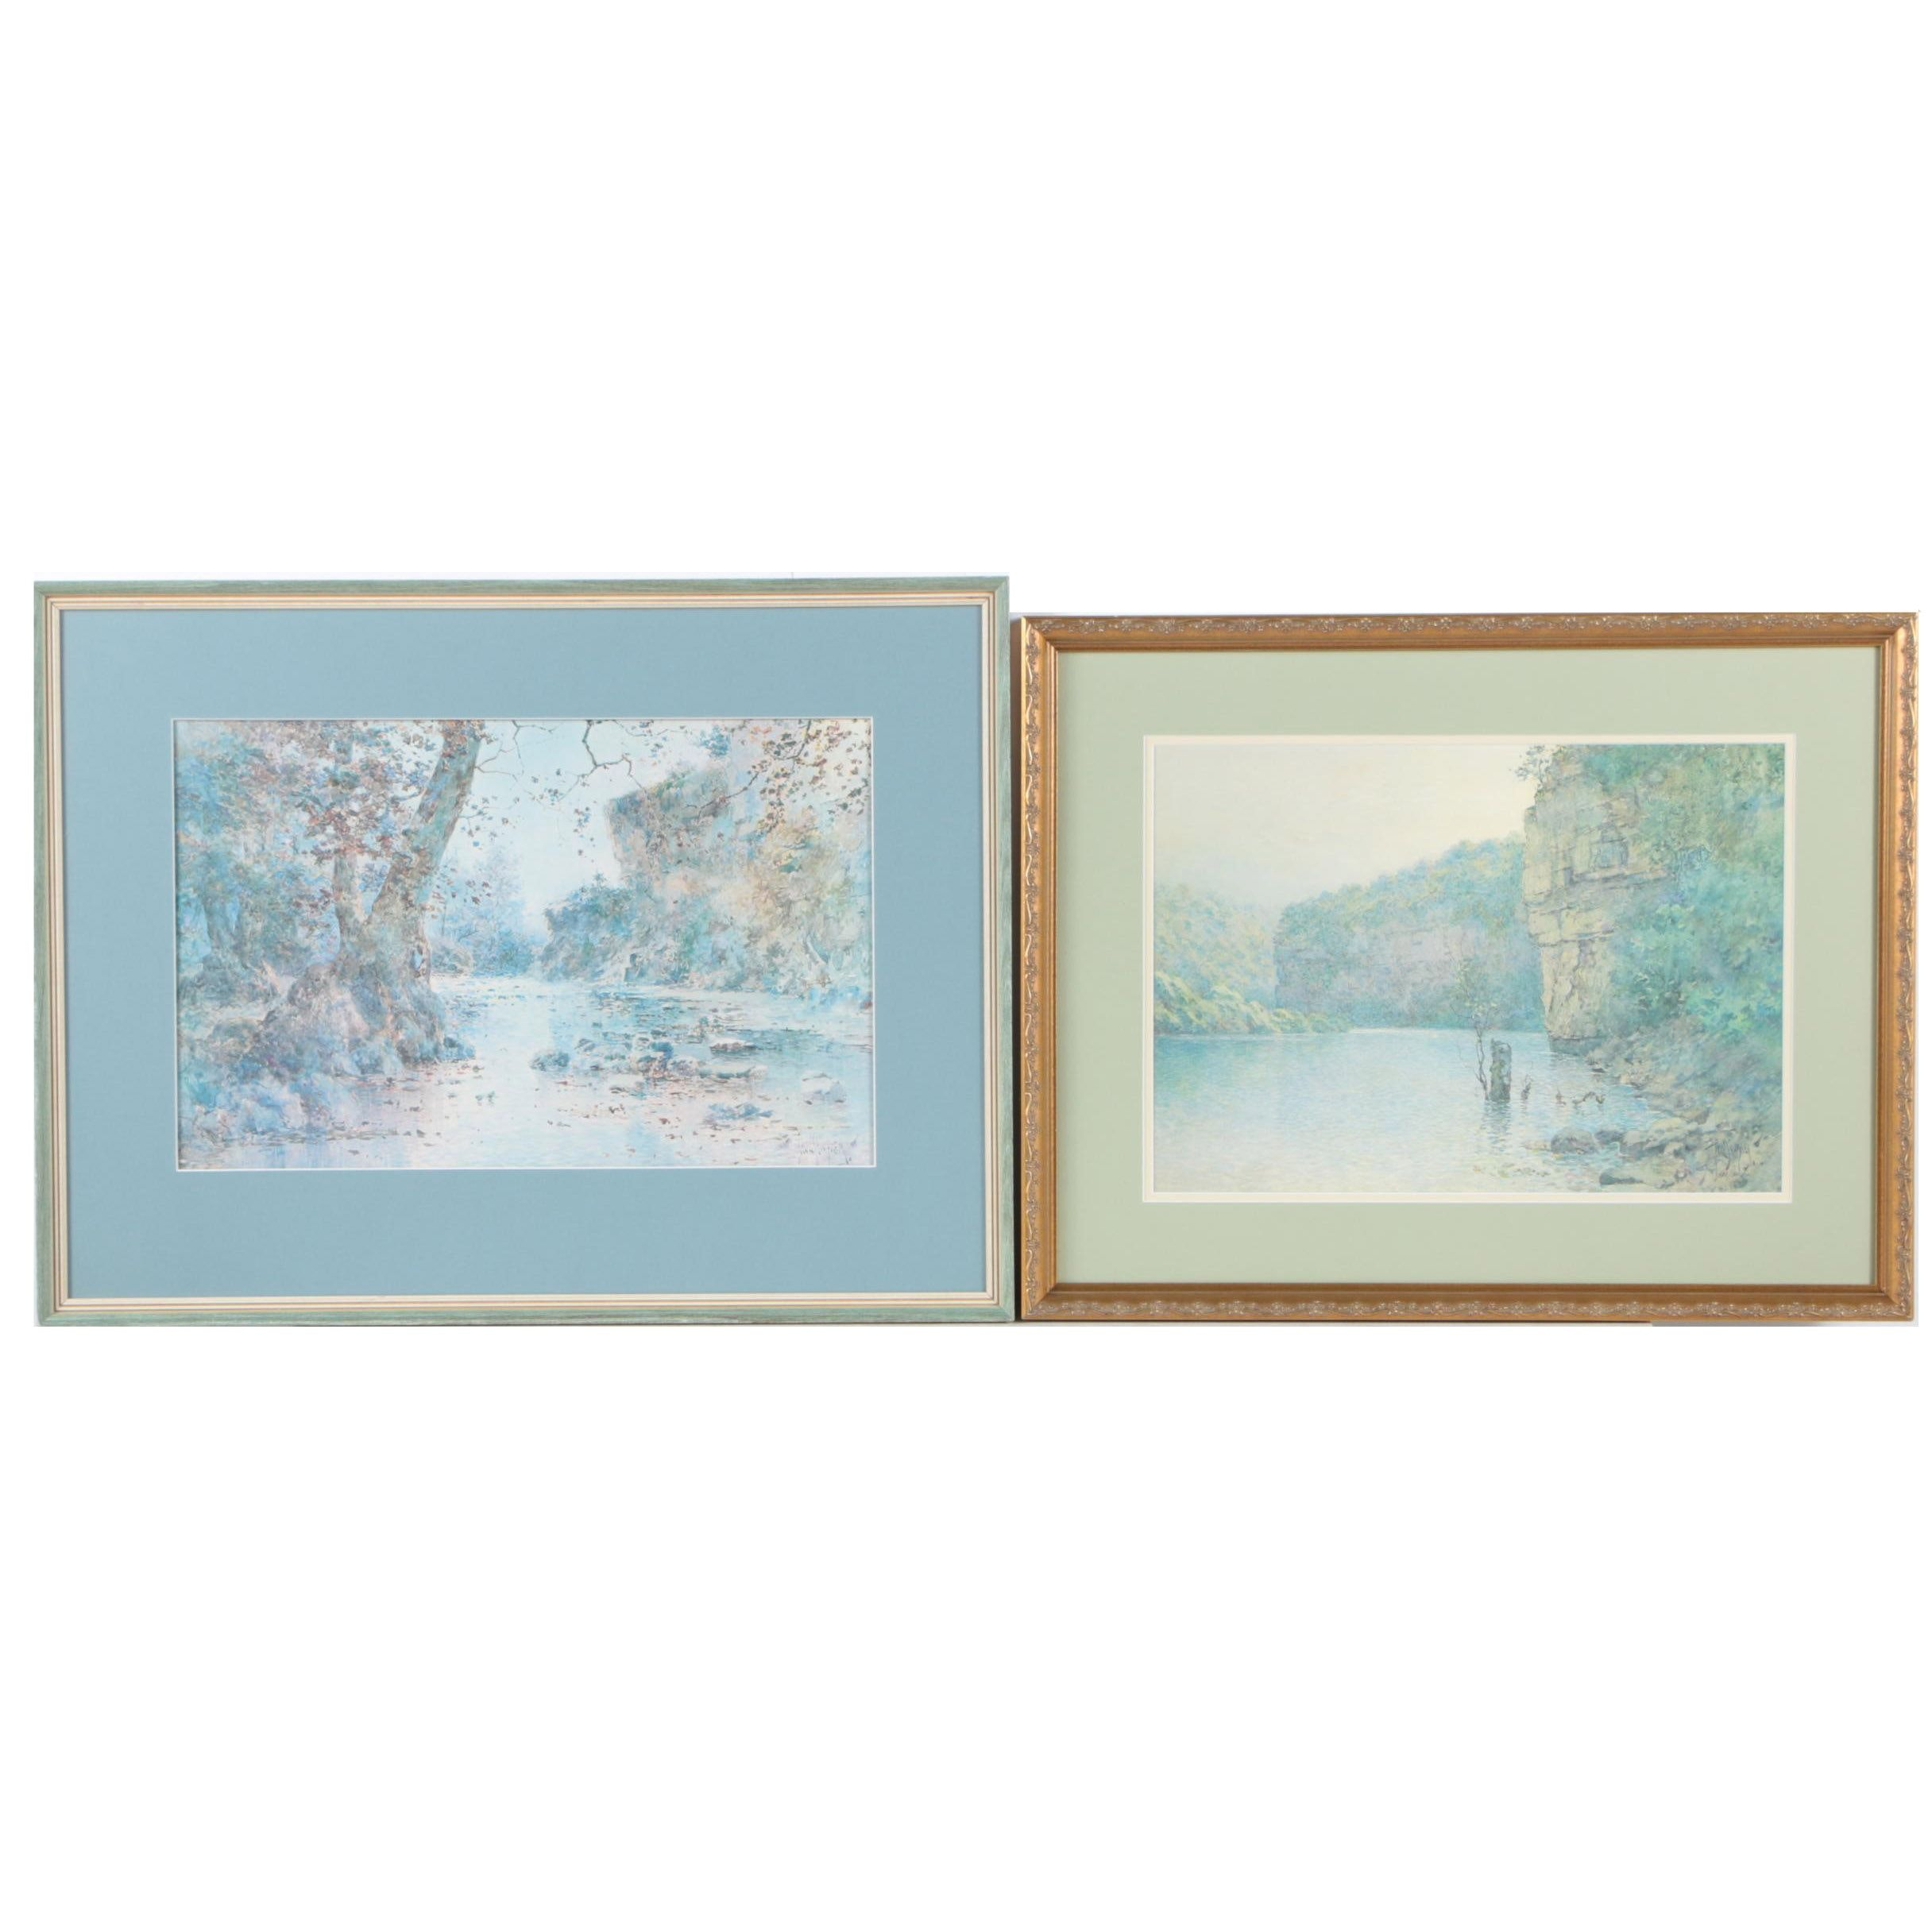 Offset Lithographs Featuring a Limited Edition After Paul Sawyier of Landscapes